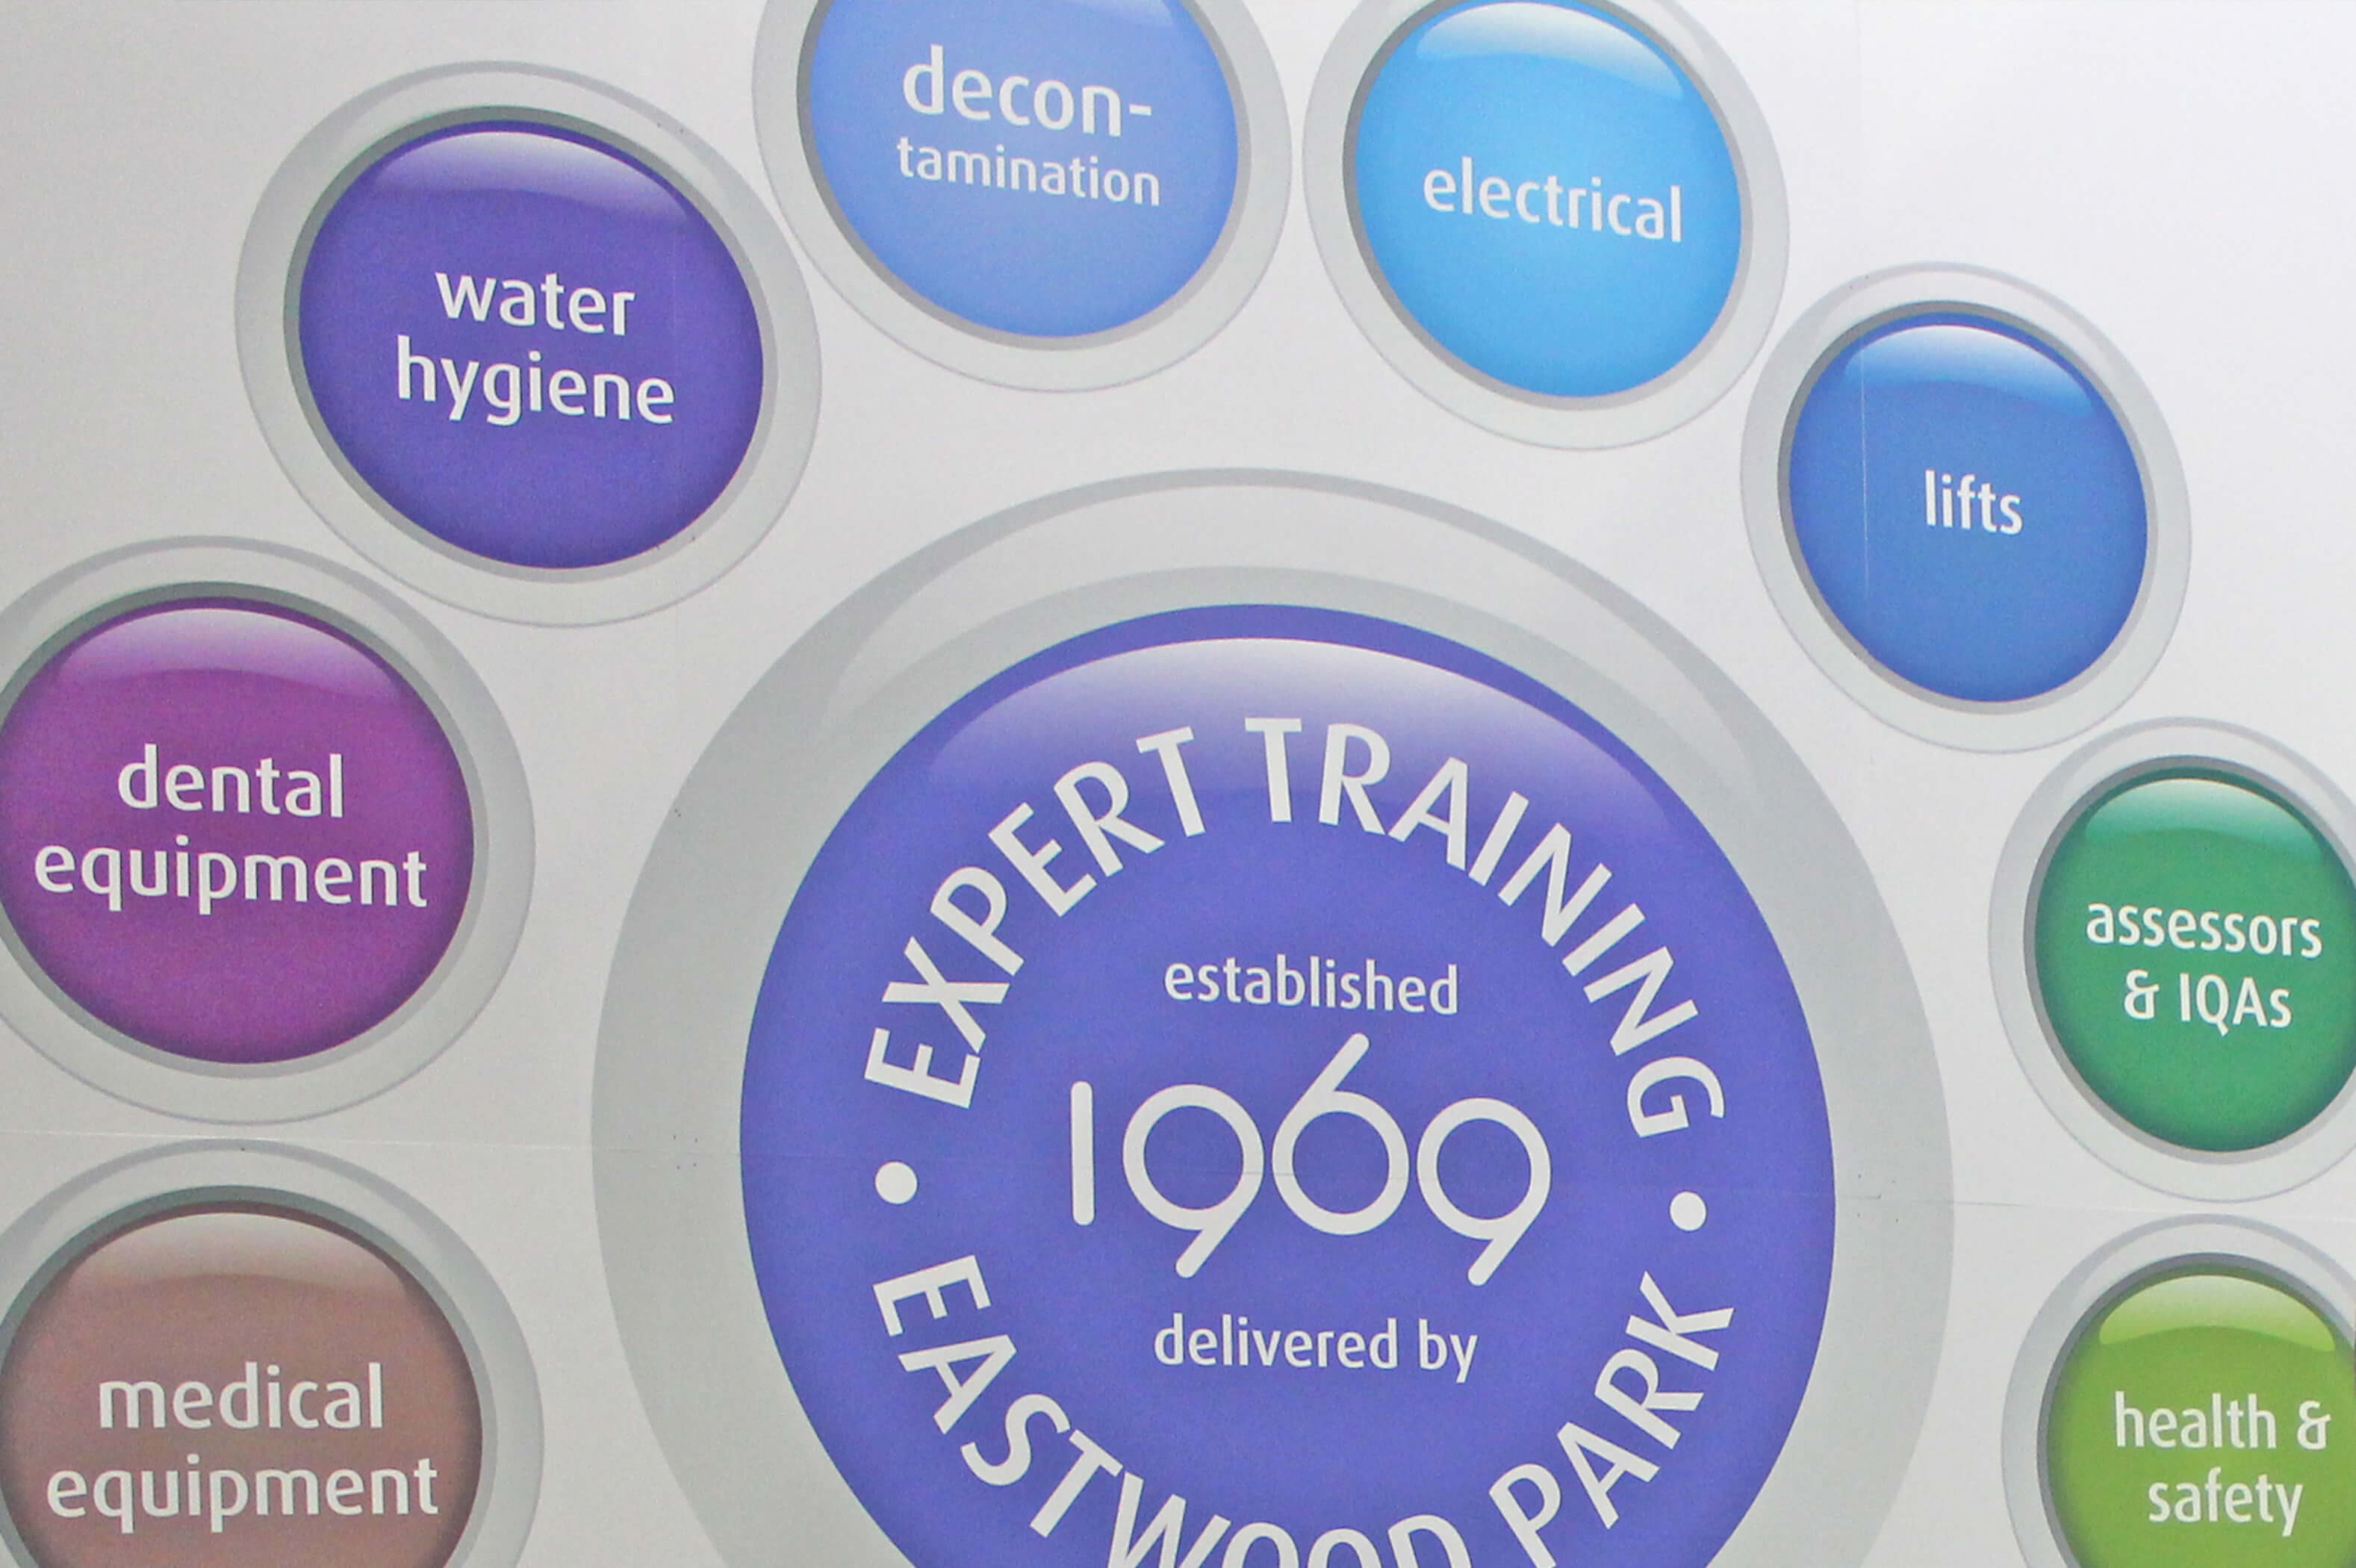 Expert training delivered since 1969 | International | Our